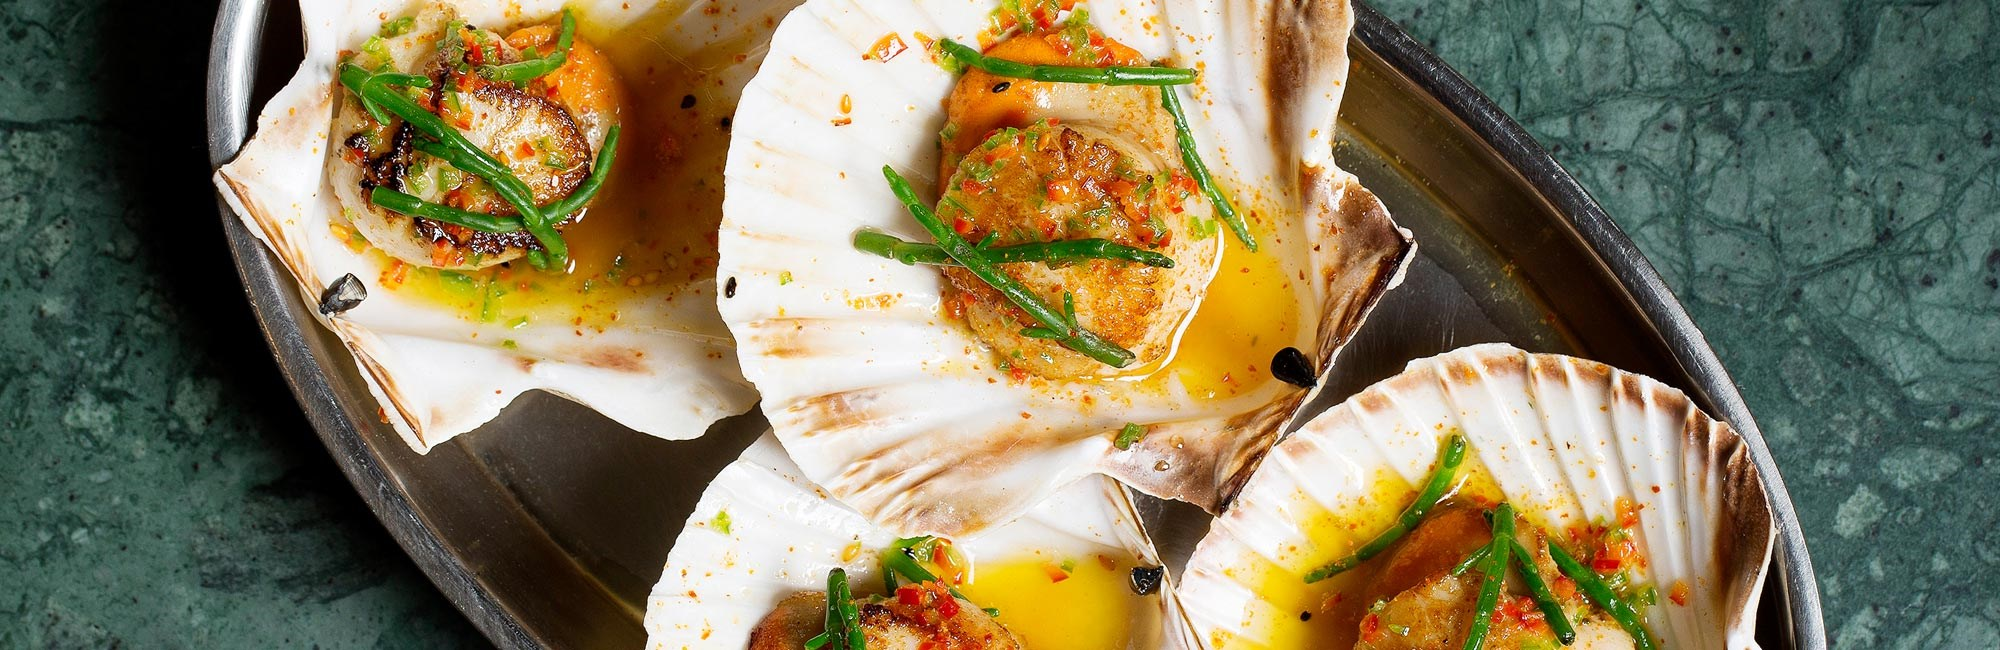 Scallops for lunch or dinner at J Sheekey Atlantic Bar in Leicester Square